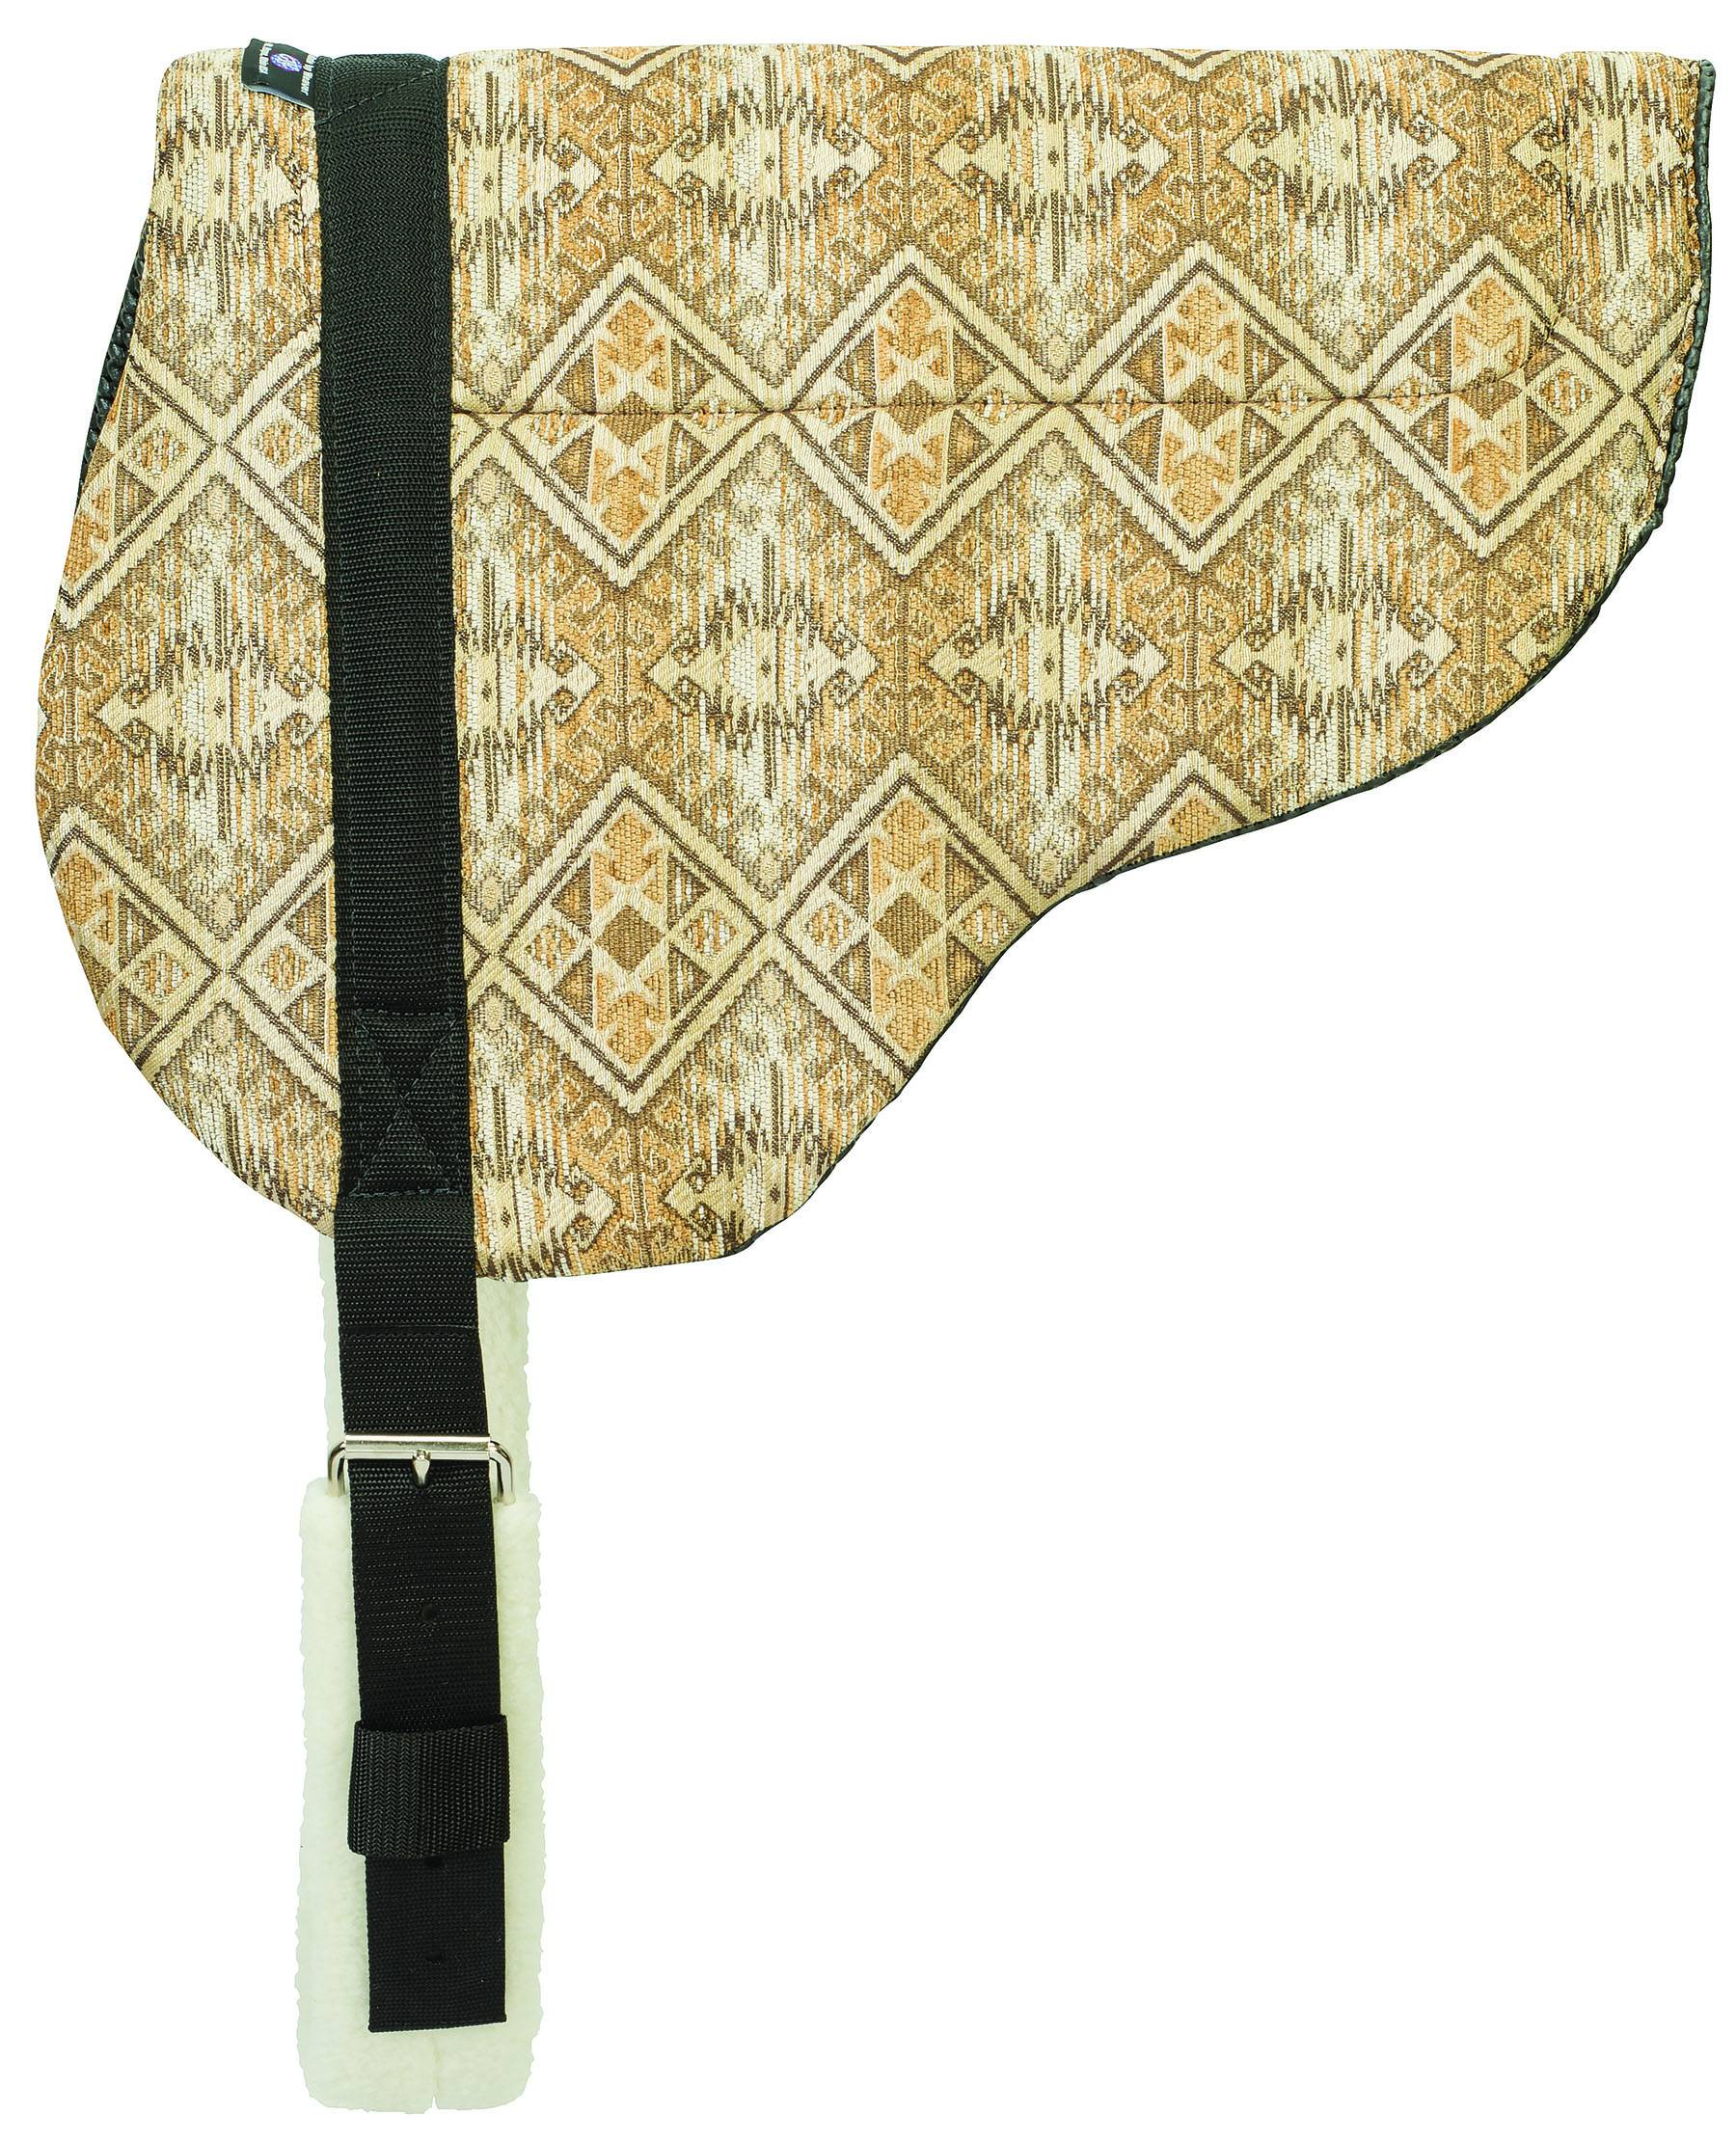 Weaver Herculon Tacky-Tack Bottom Bareback Pad - H34